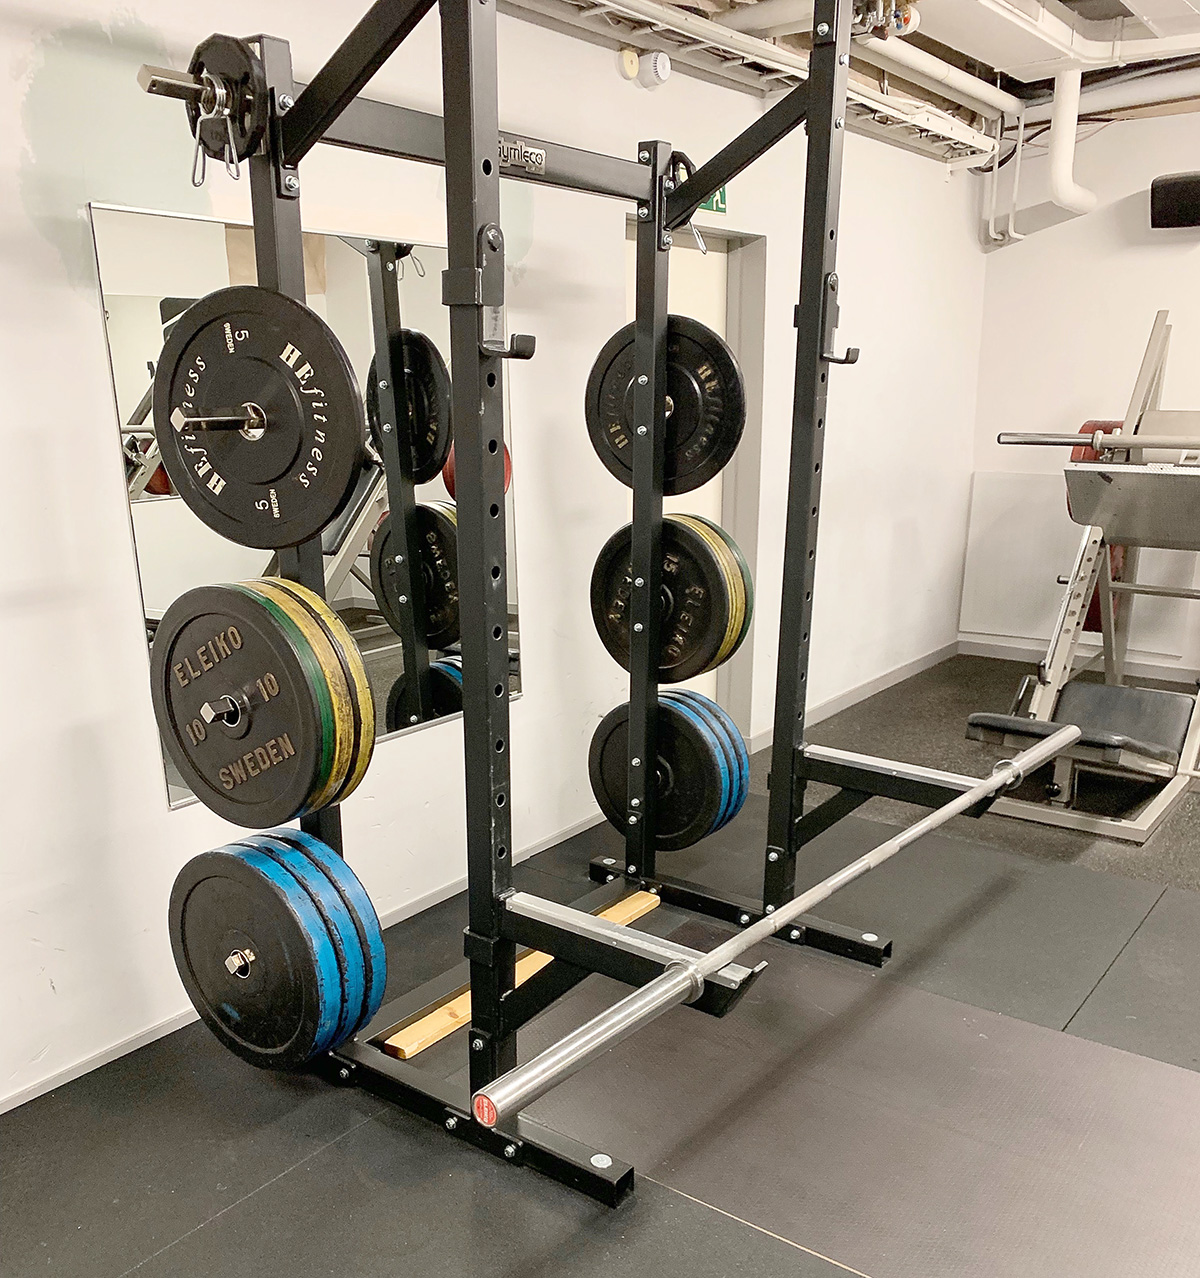 power-rack-01.jpg